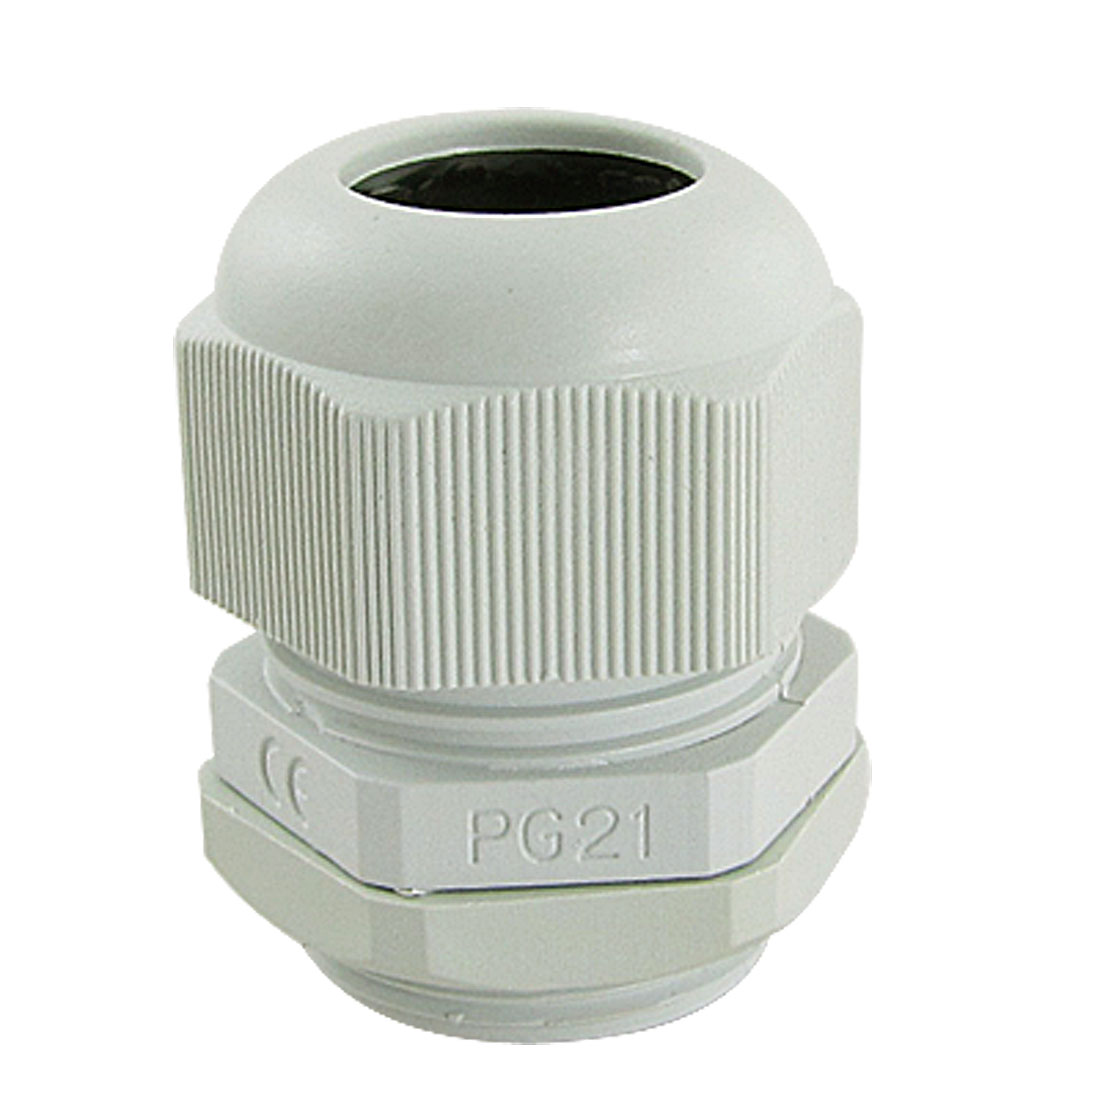 13-18mm Cables Waterproof PG21 White Plastic Glands Connectors 5 Pcs